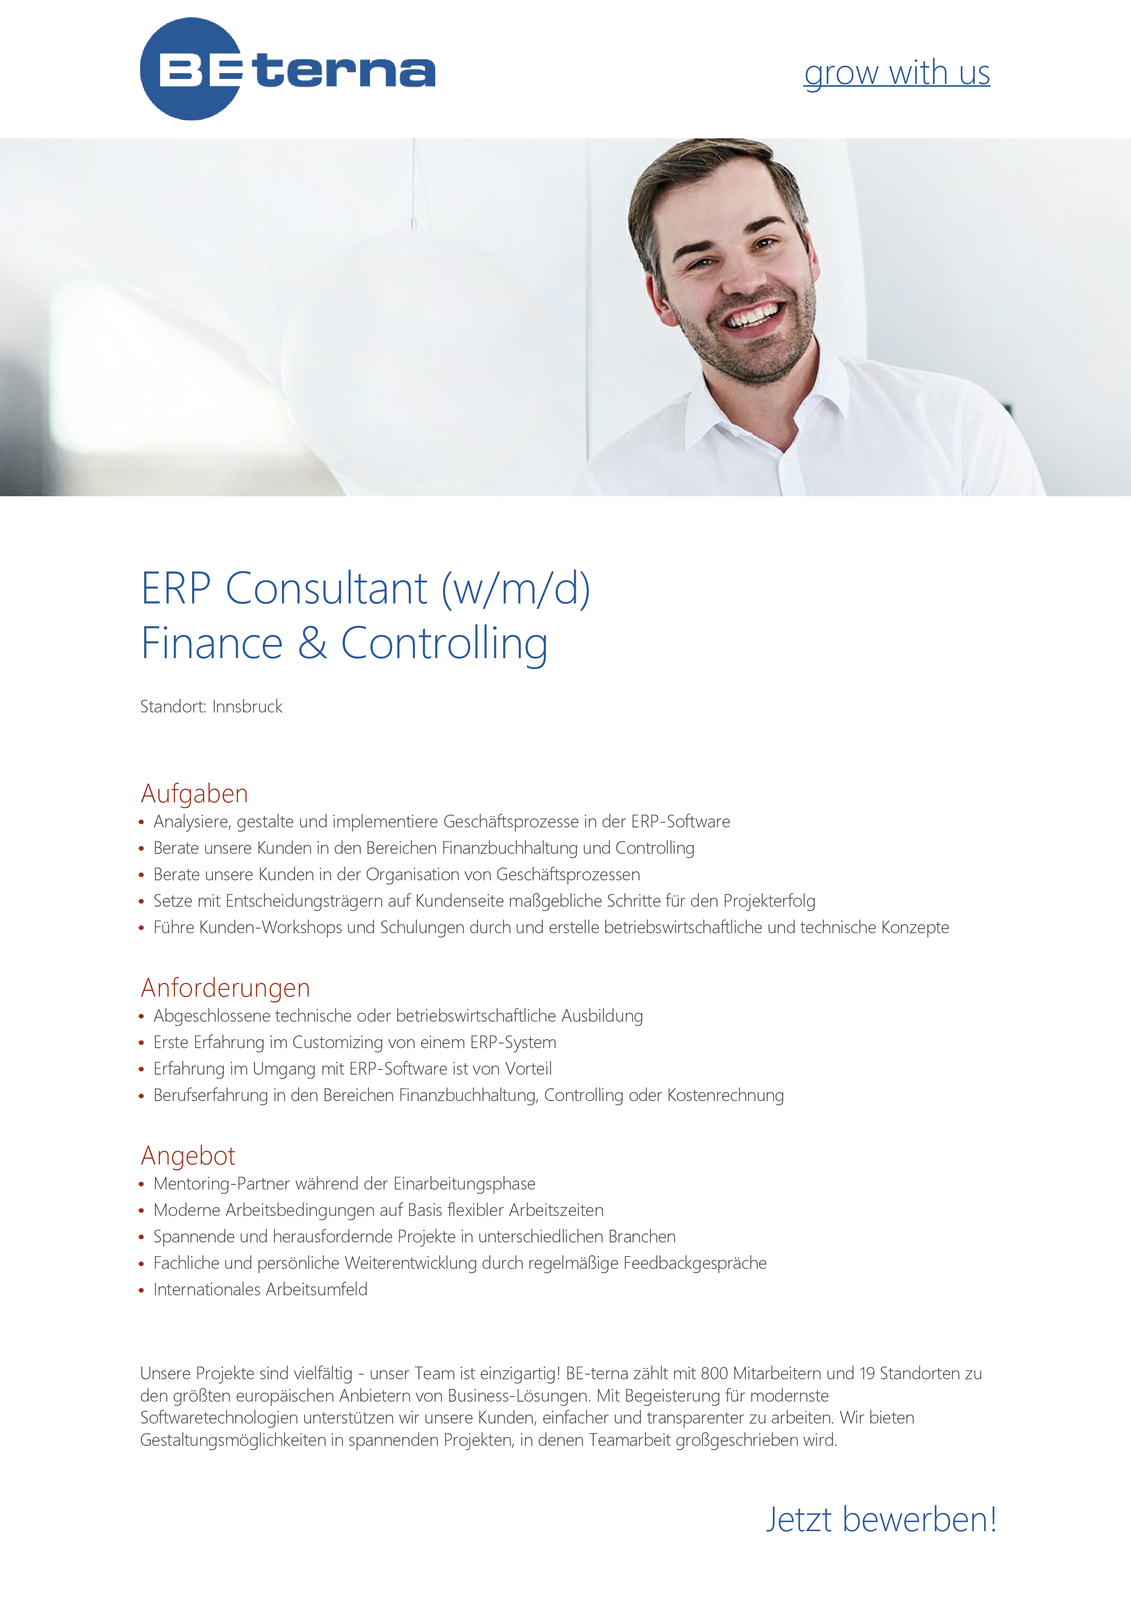 ERP Consultant Finance & Controlling (w/m/d)